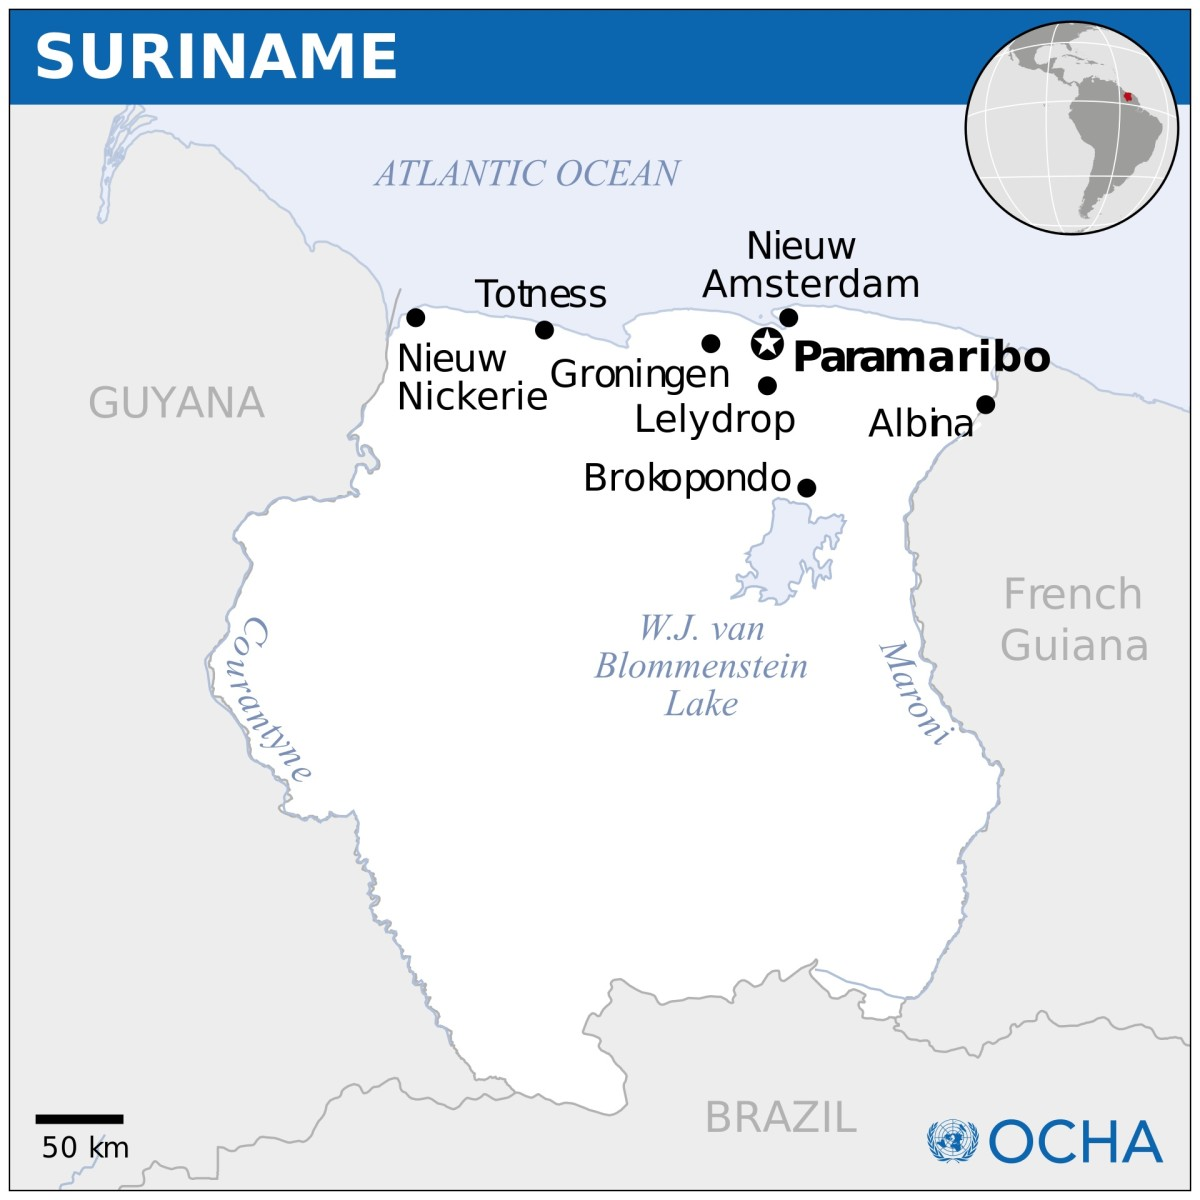 The Surinam toad is named after the country of Suriname, which is located in the northeastern part of South America.